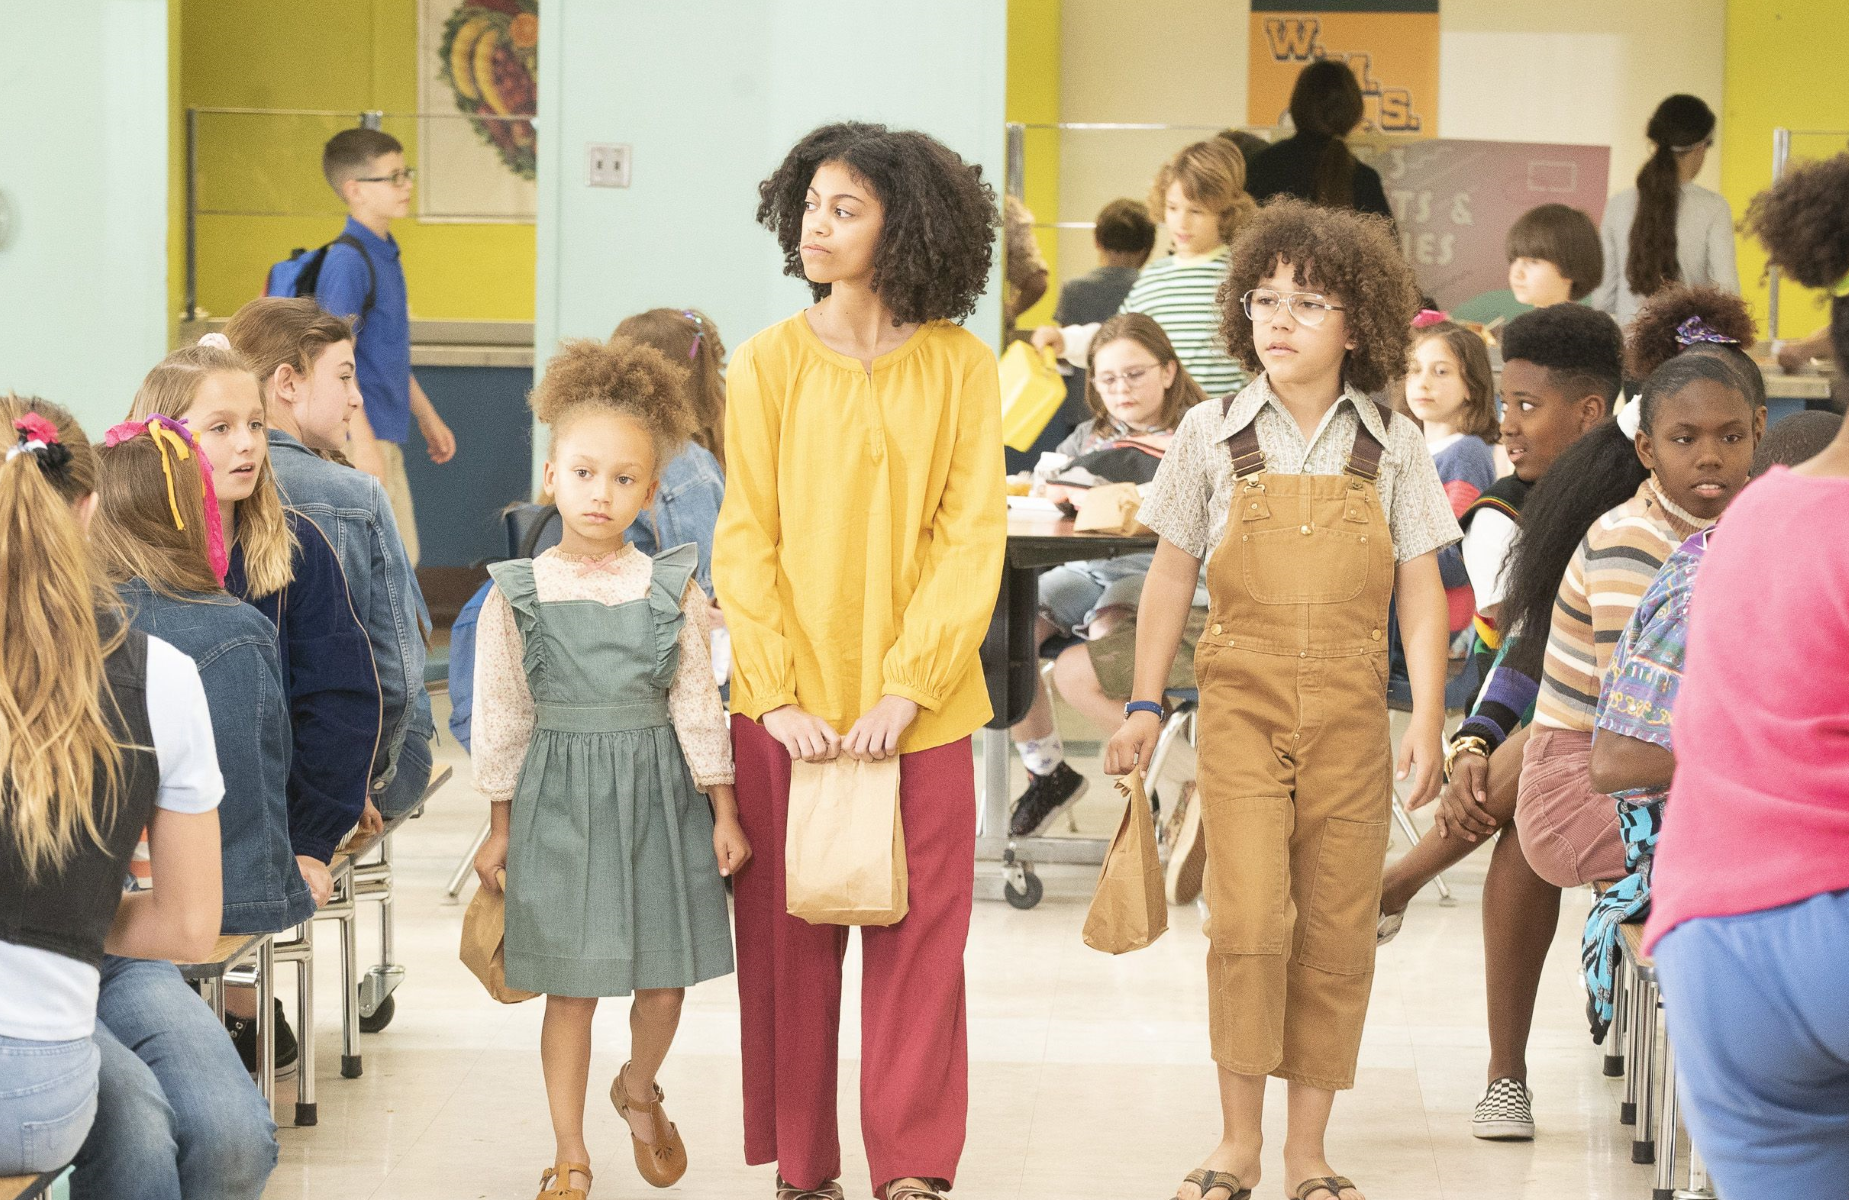 ABC comedy Black-ish is set to spawn a second spin-off, Mixed-ish